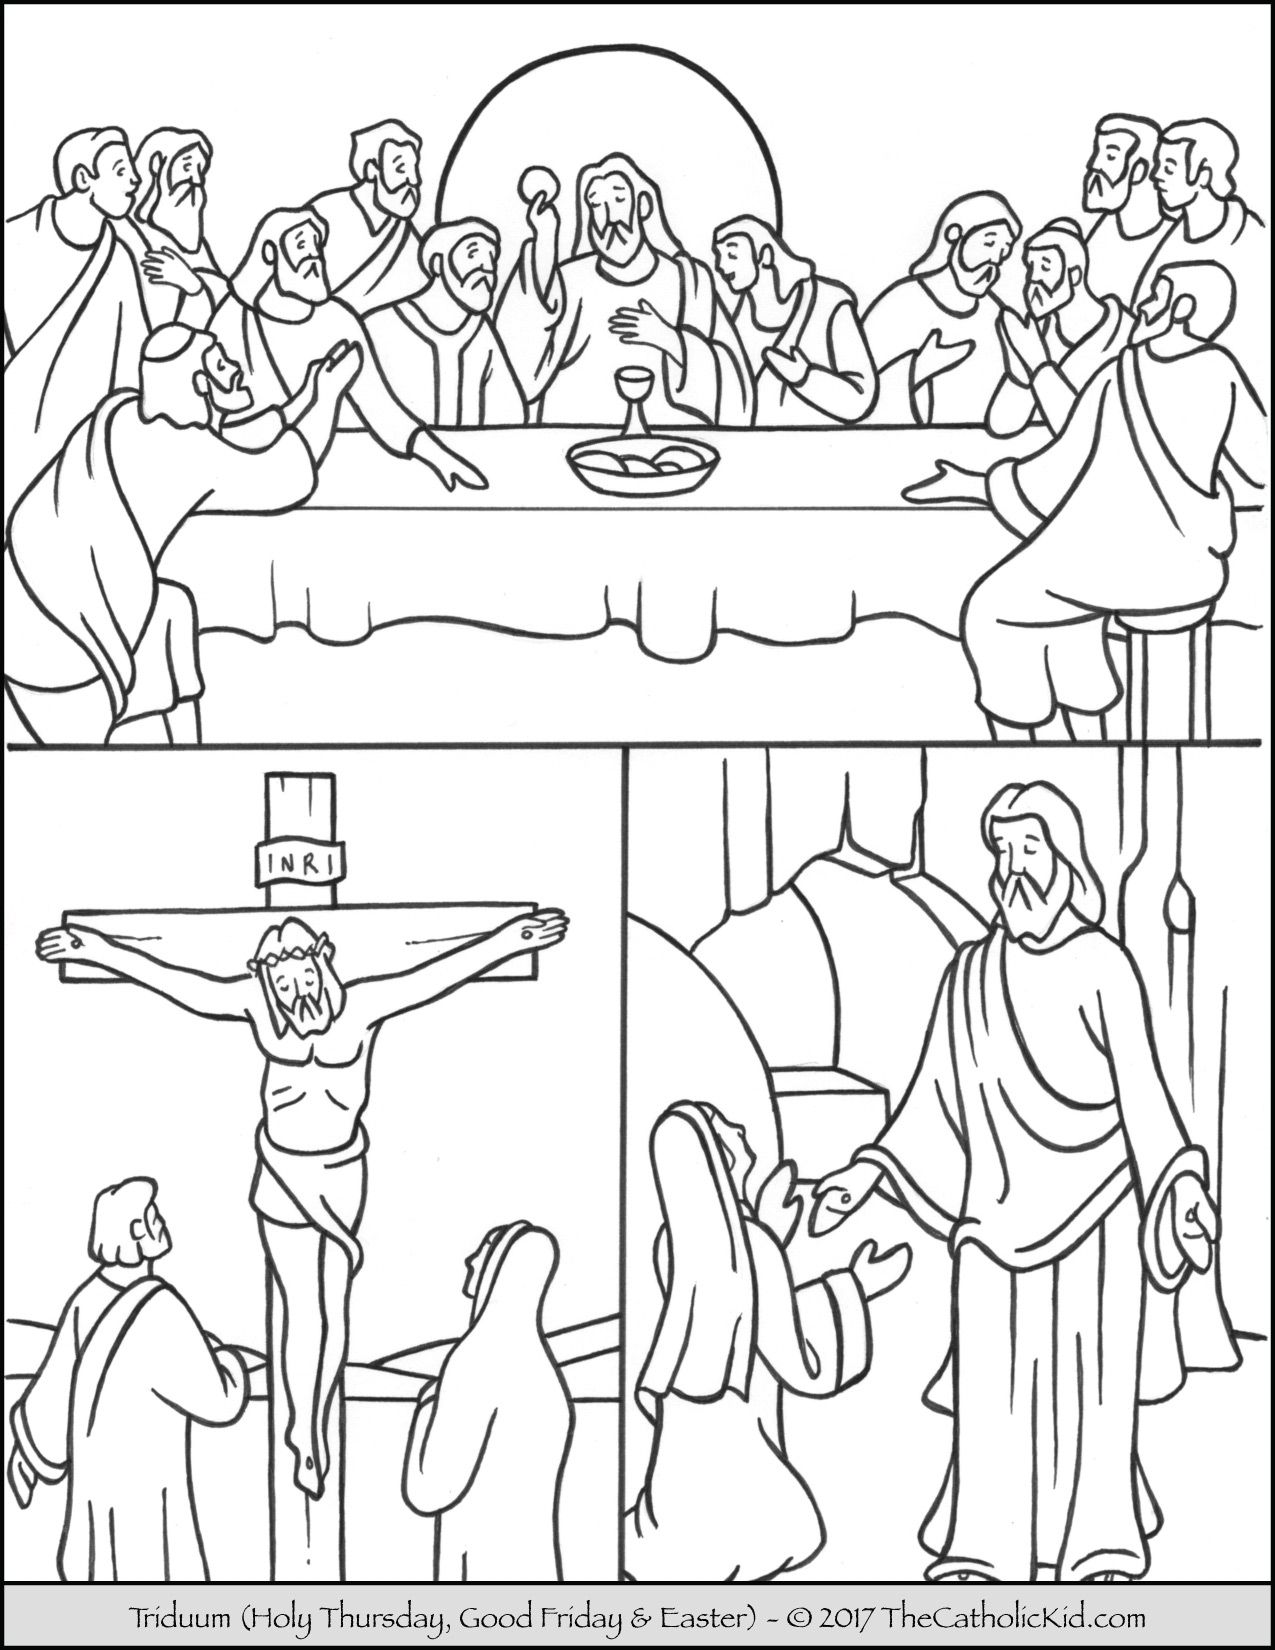 Holy Thursday Coloring Pages Gallery In 2020 Sunday School Coloring Pages Easter Sunday School Coloring Pages